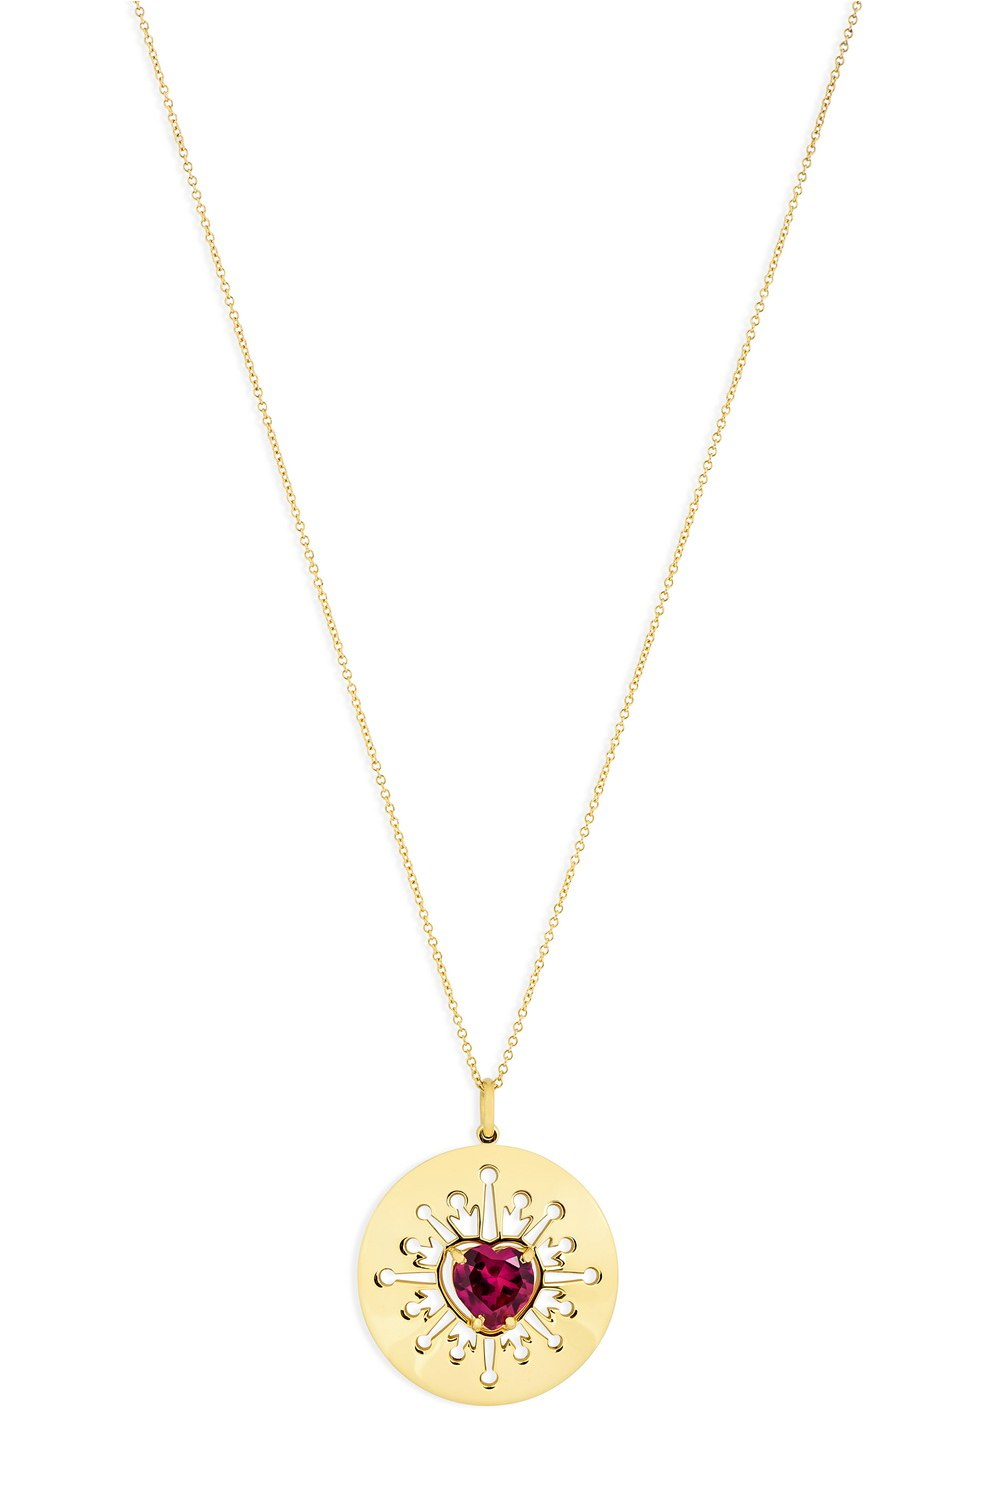 Red Heart In Round Yellow Pendant Necklace with Ray Cut-Outs